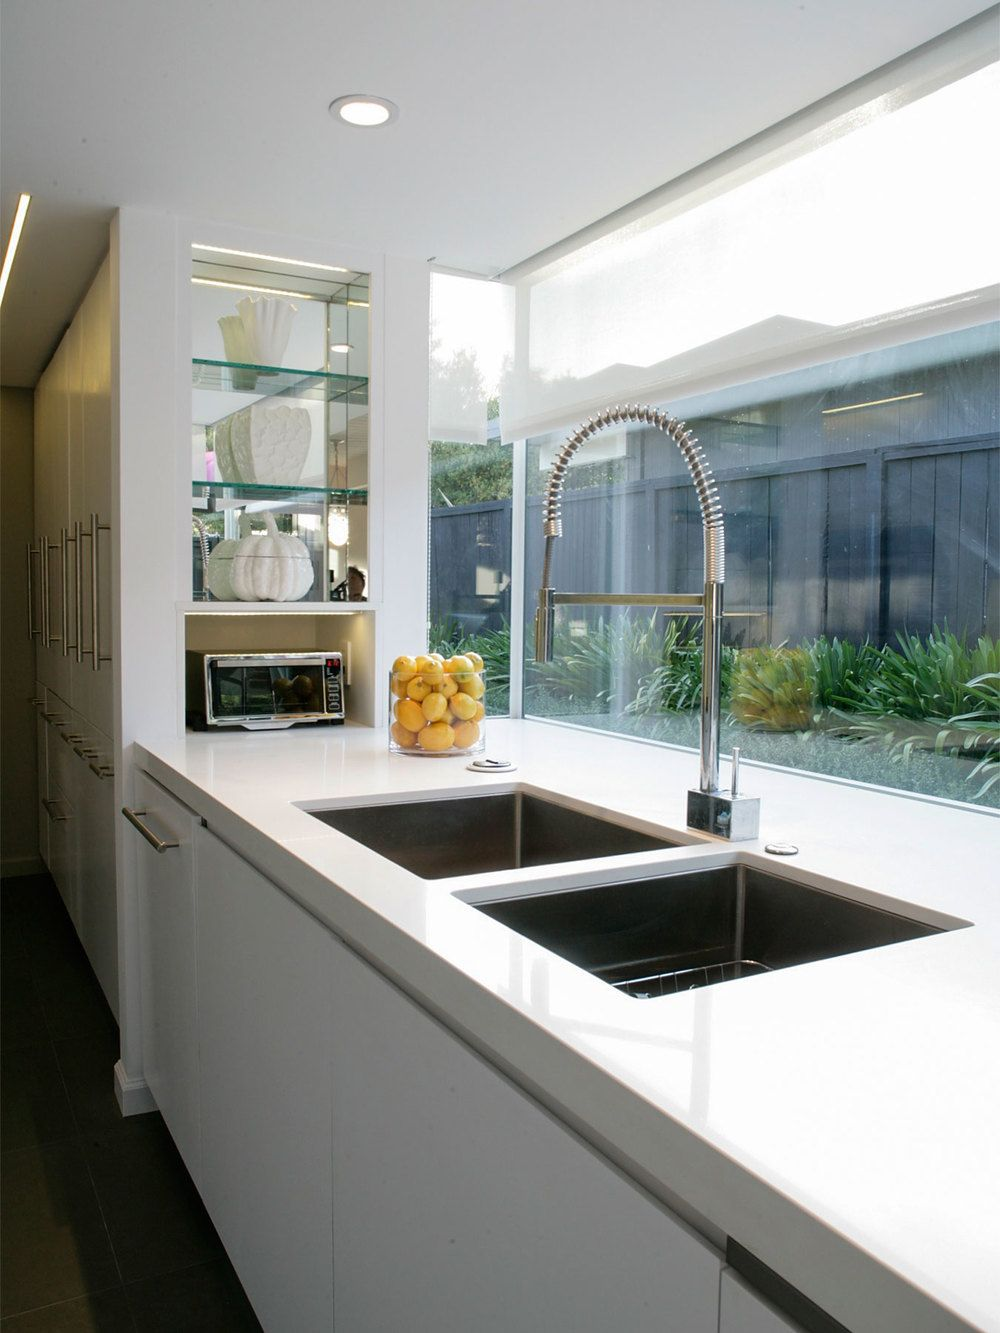 Large double sink and window splashback | Home Reno inspiration ...